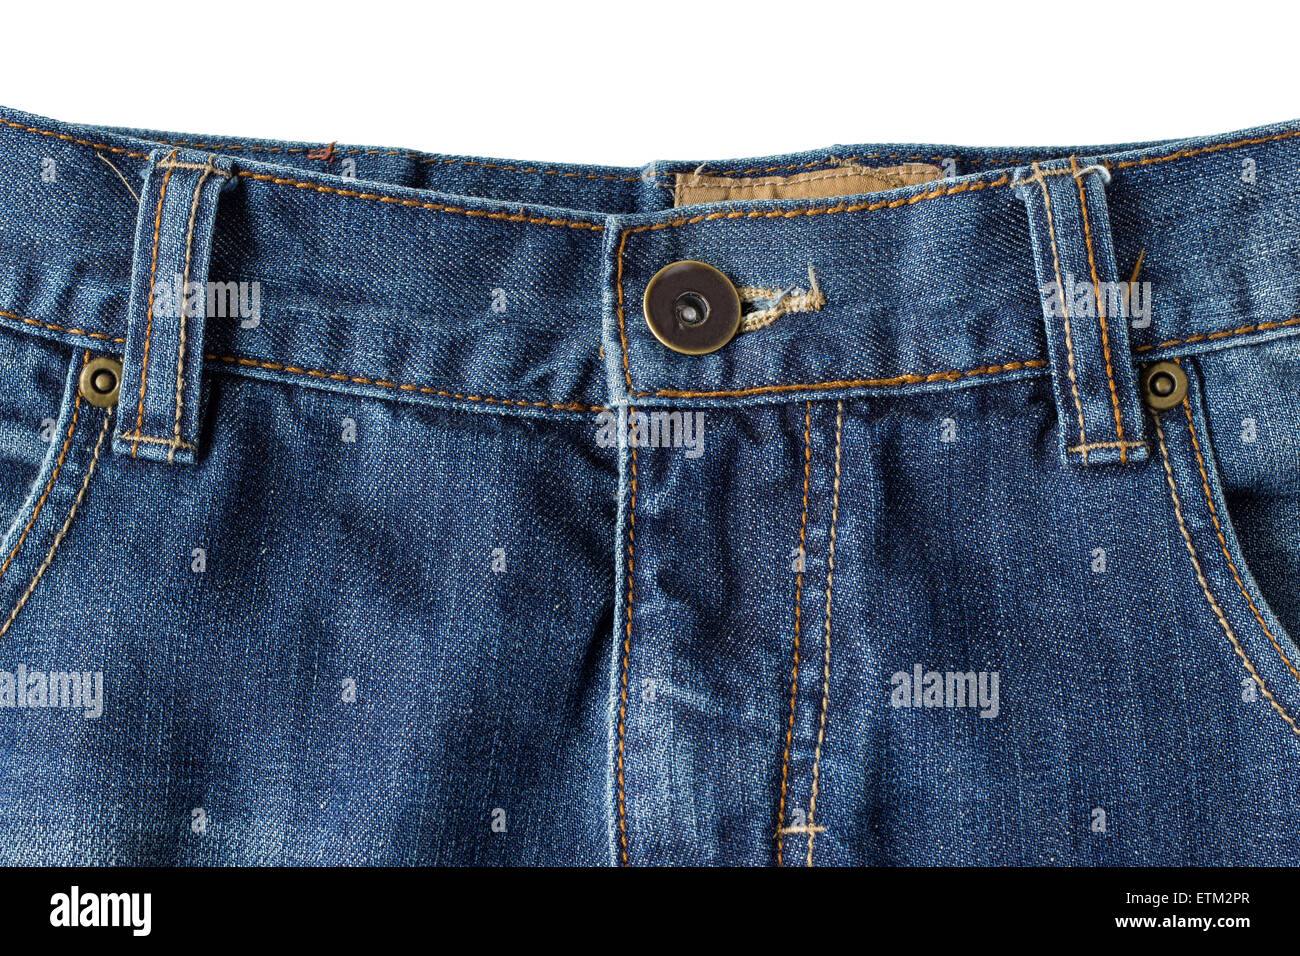 Close-up of buttoned blue denim jeans isolated on white background - Stock Image